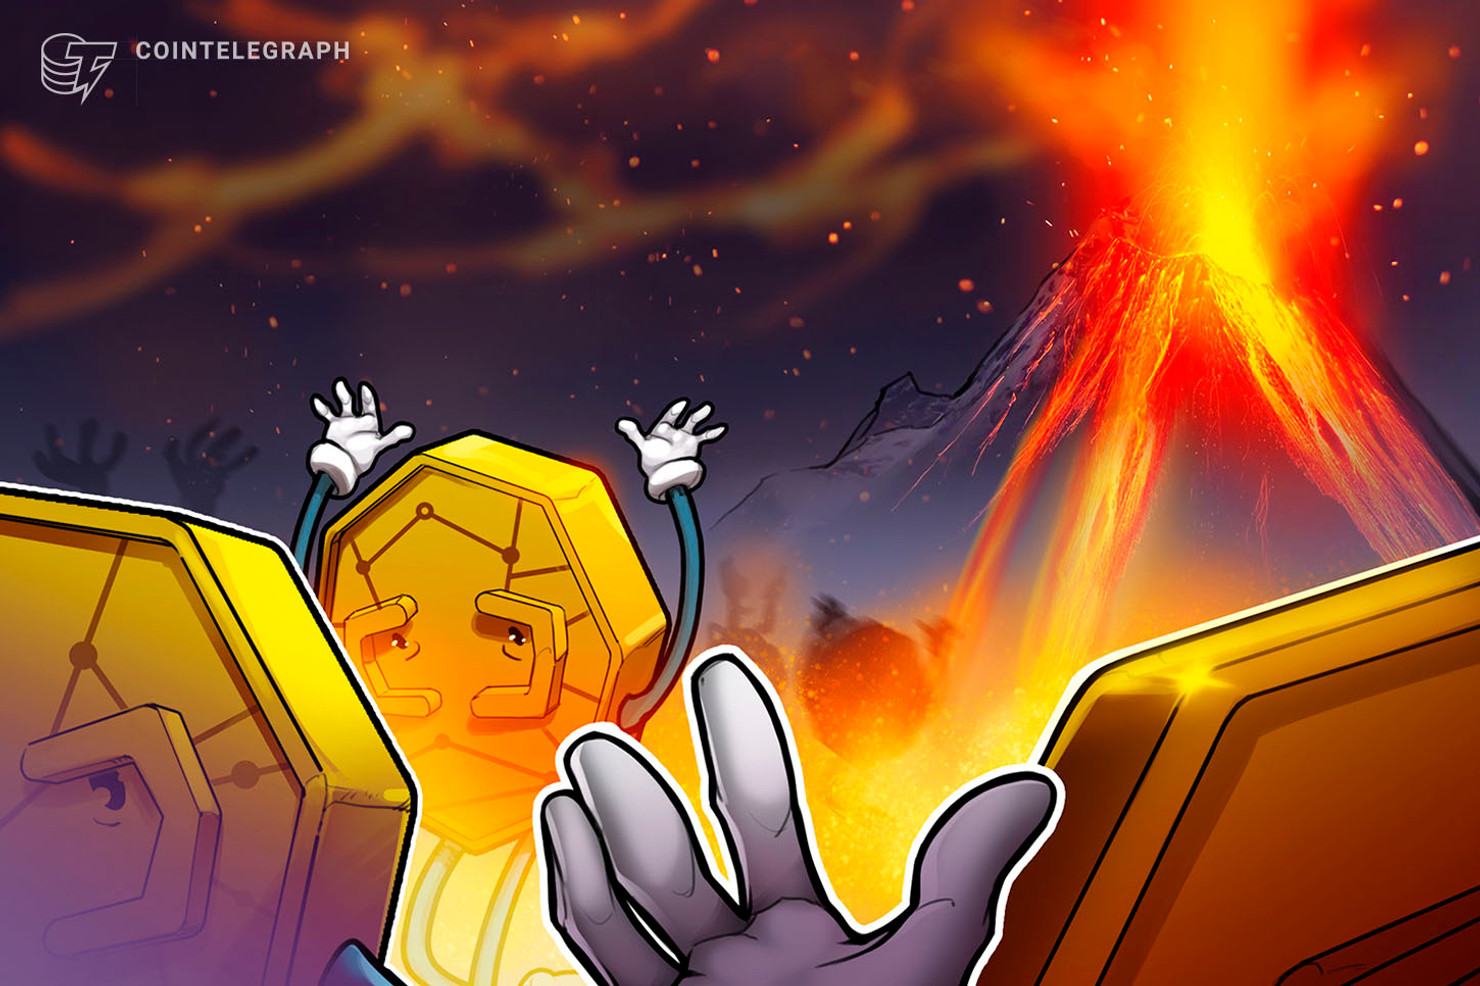 Relief Bounce May Stop $7.5K Bitcoin as Global Markets Face Disaster